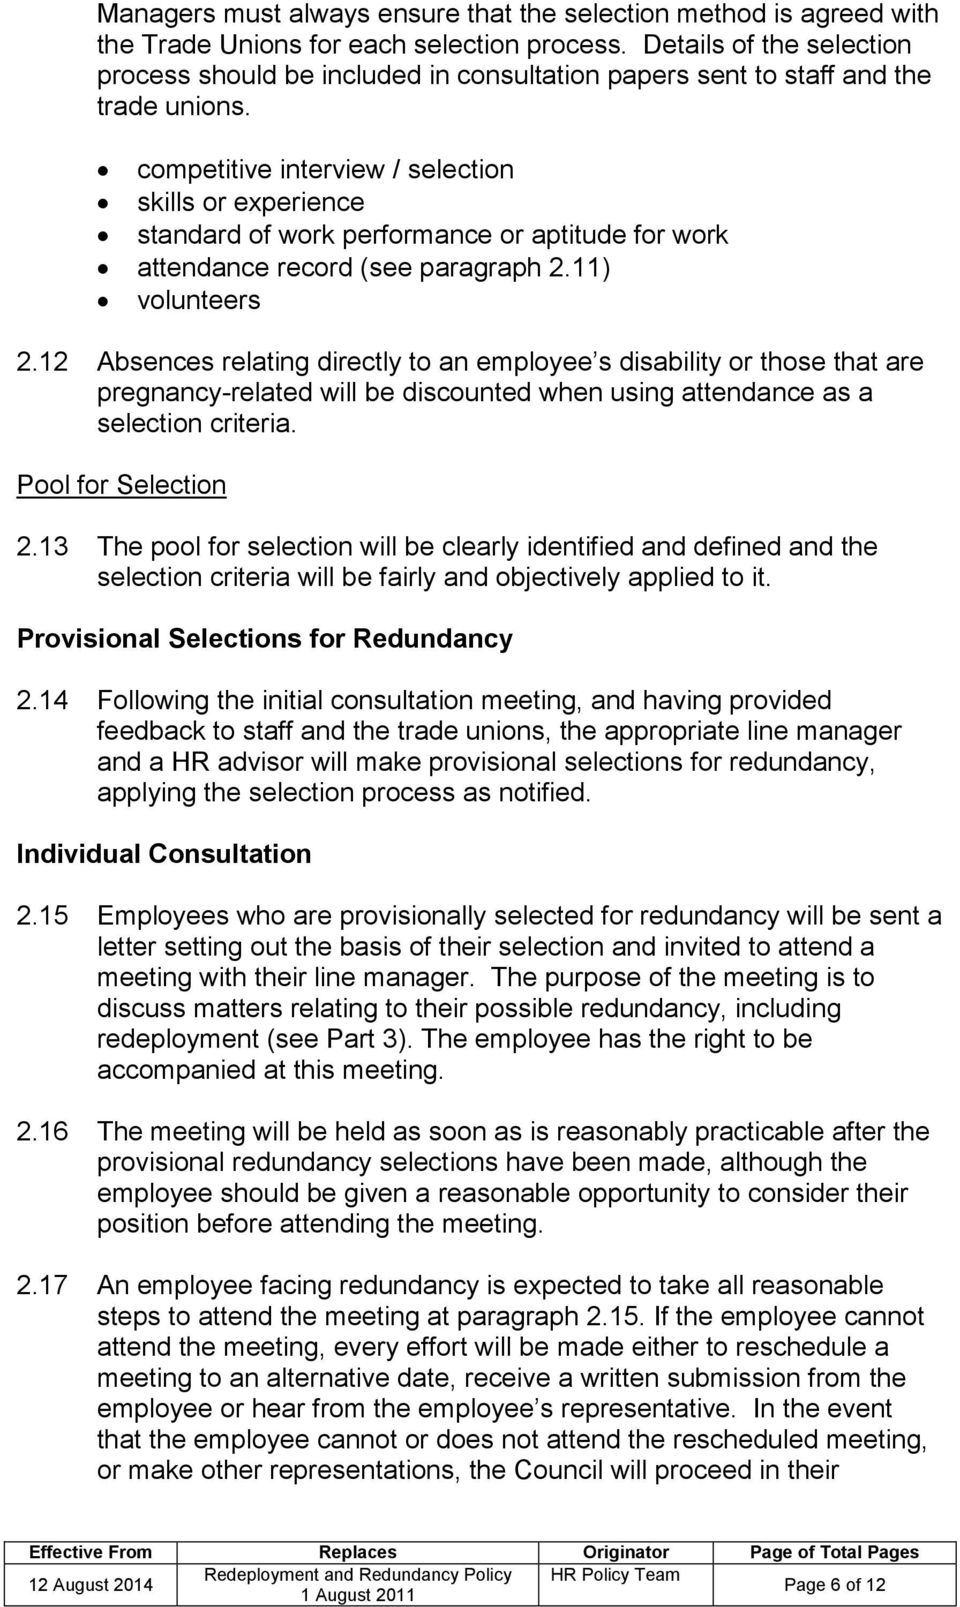 competitive interview / selection skills or experience standard of work performance or aptitude for work attendance record (see paragraph 2.11) volunteers 2.